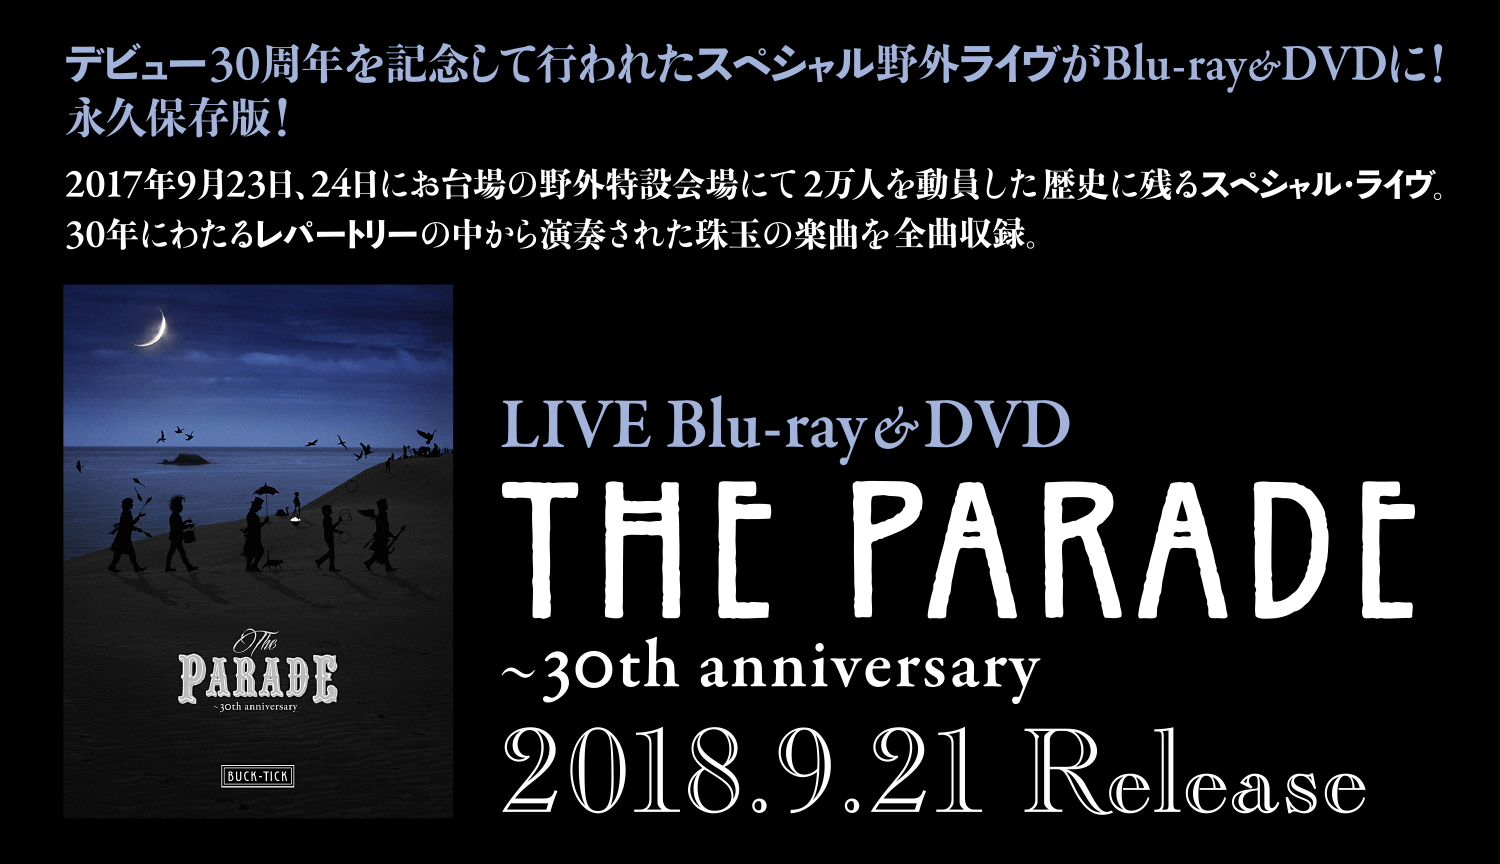 THE PARADE 〜30th anniversary〜